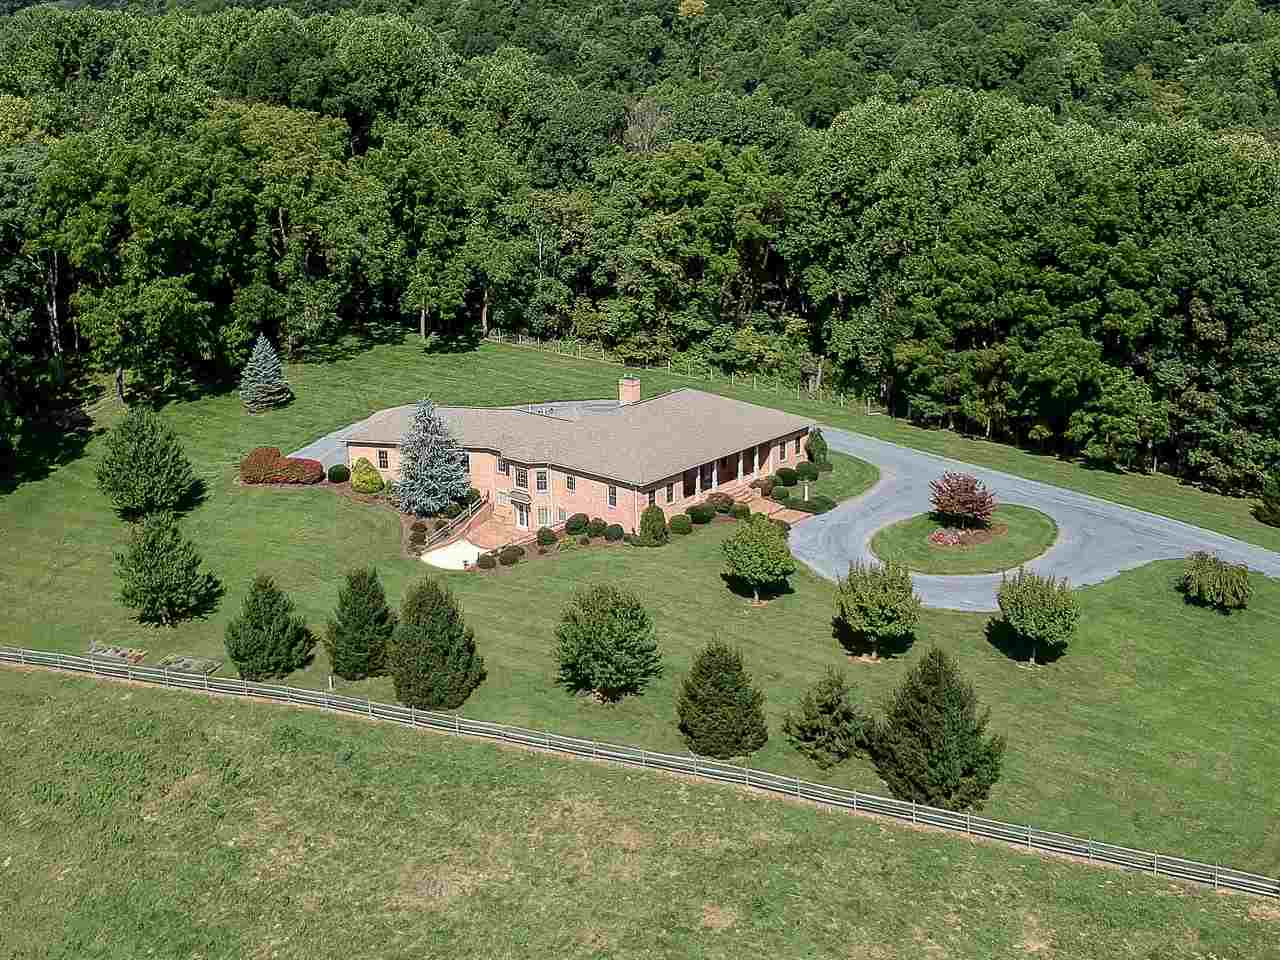 610 SPRINGBRANCH RD, LEXINGTON, VA 24450